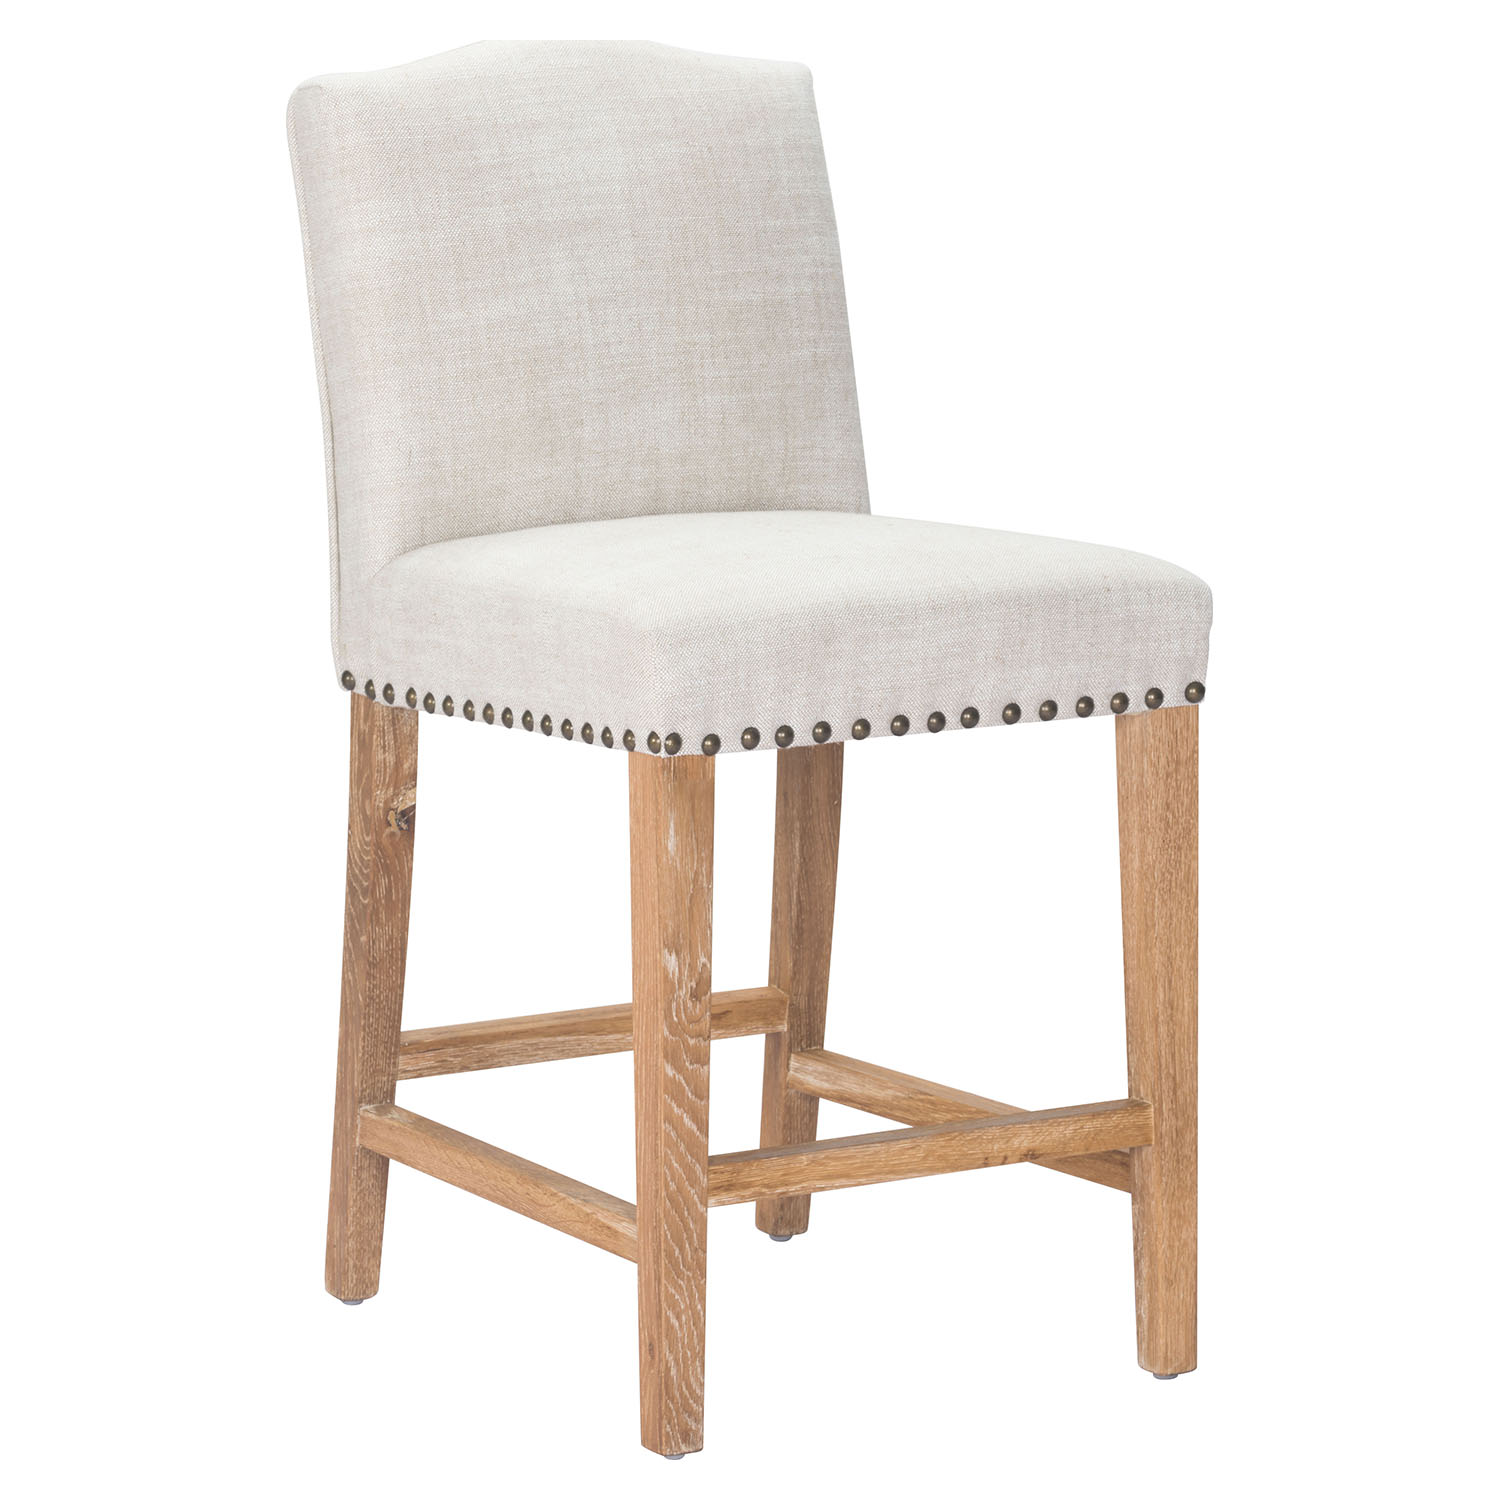 Pasadena Counter Chair - Nailheads, Beige - ZM-98601